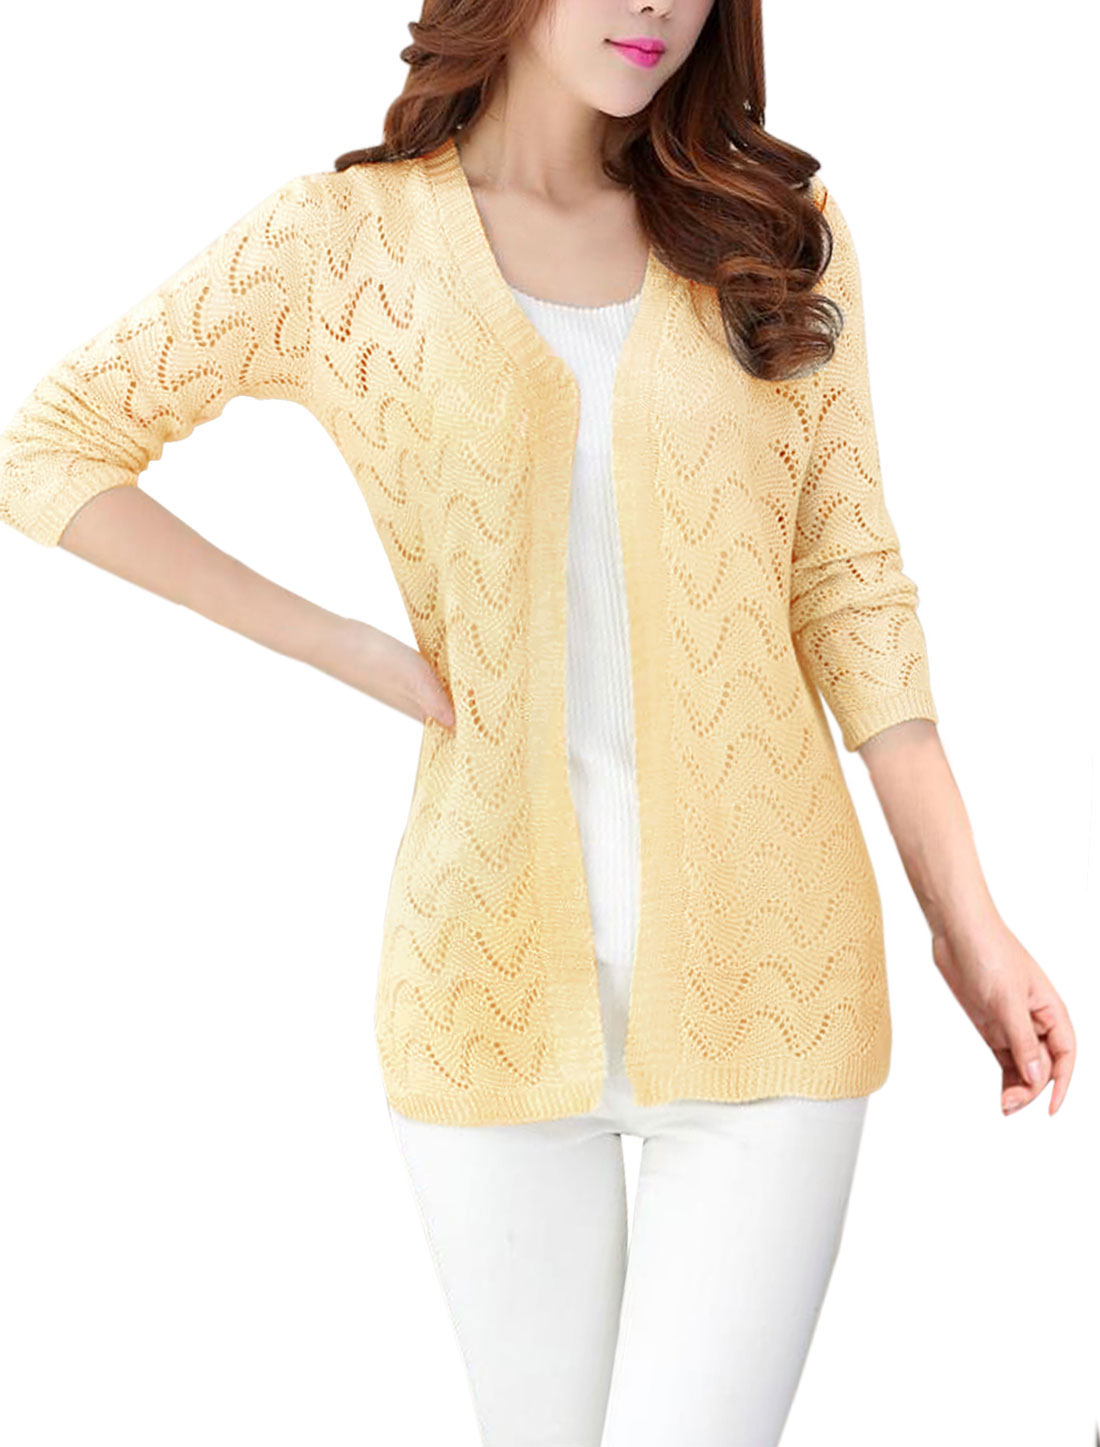 Lady Hollow Out 3/4 Sleeves Open Front Split Sides Knit Cardigan Cream S